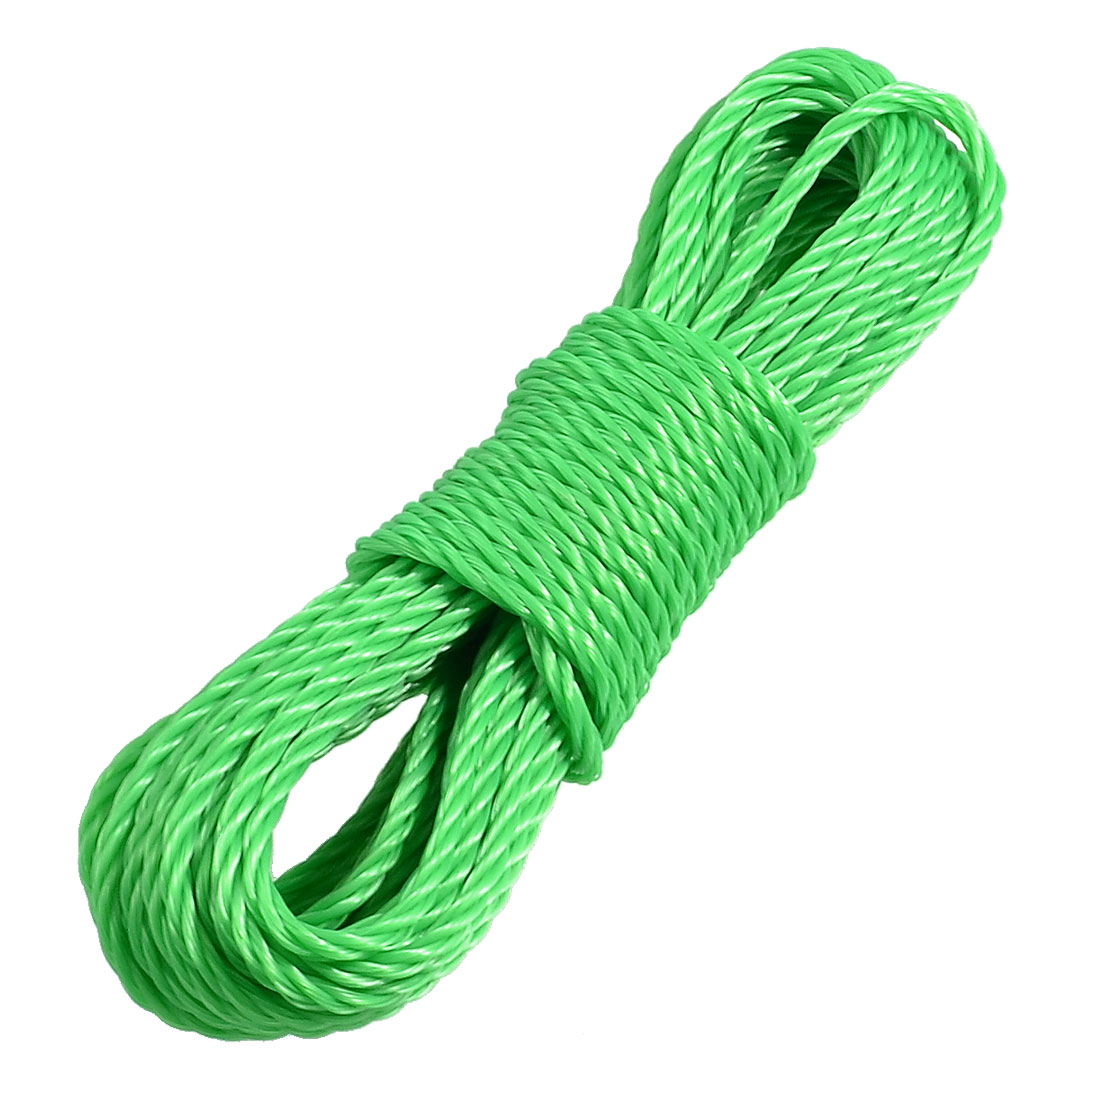 Home Outdoor Green Twisted Nylon Clothes Rope String Line 9.4M